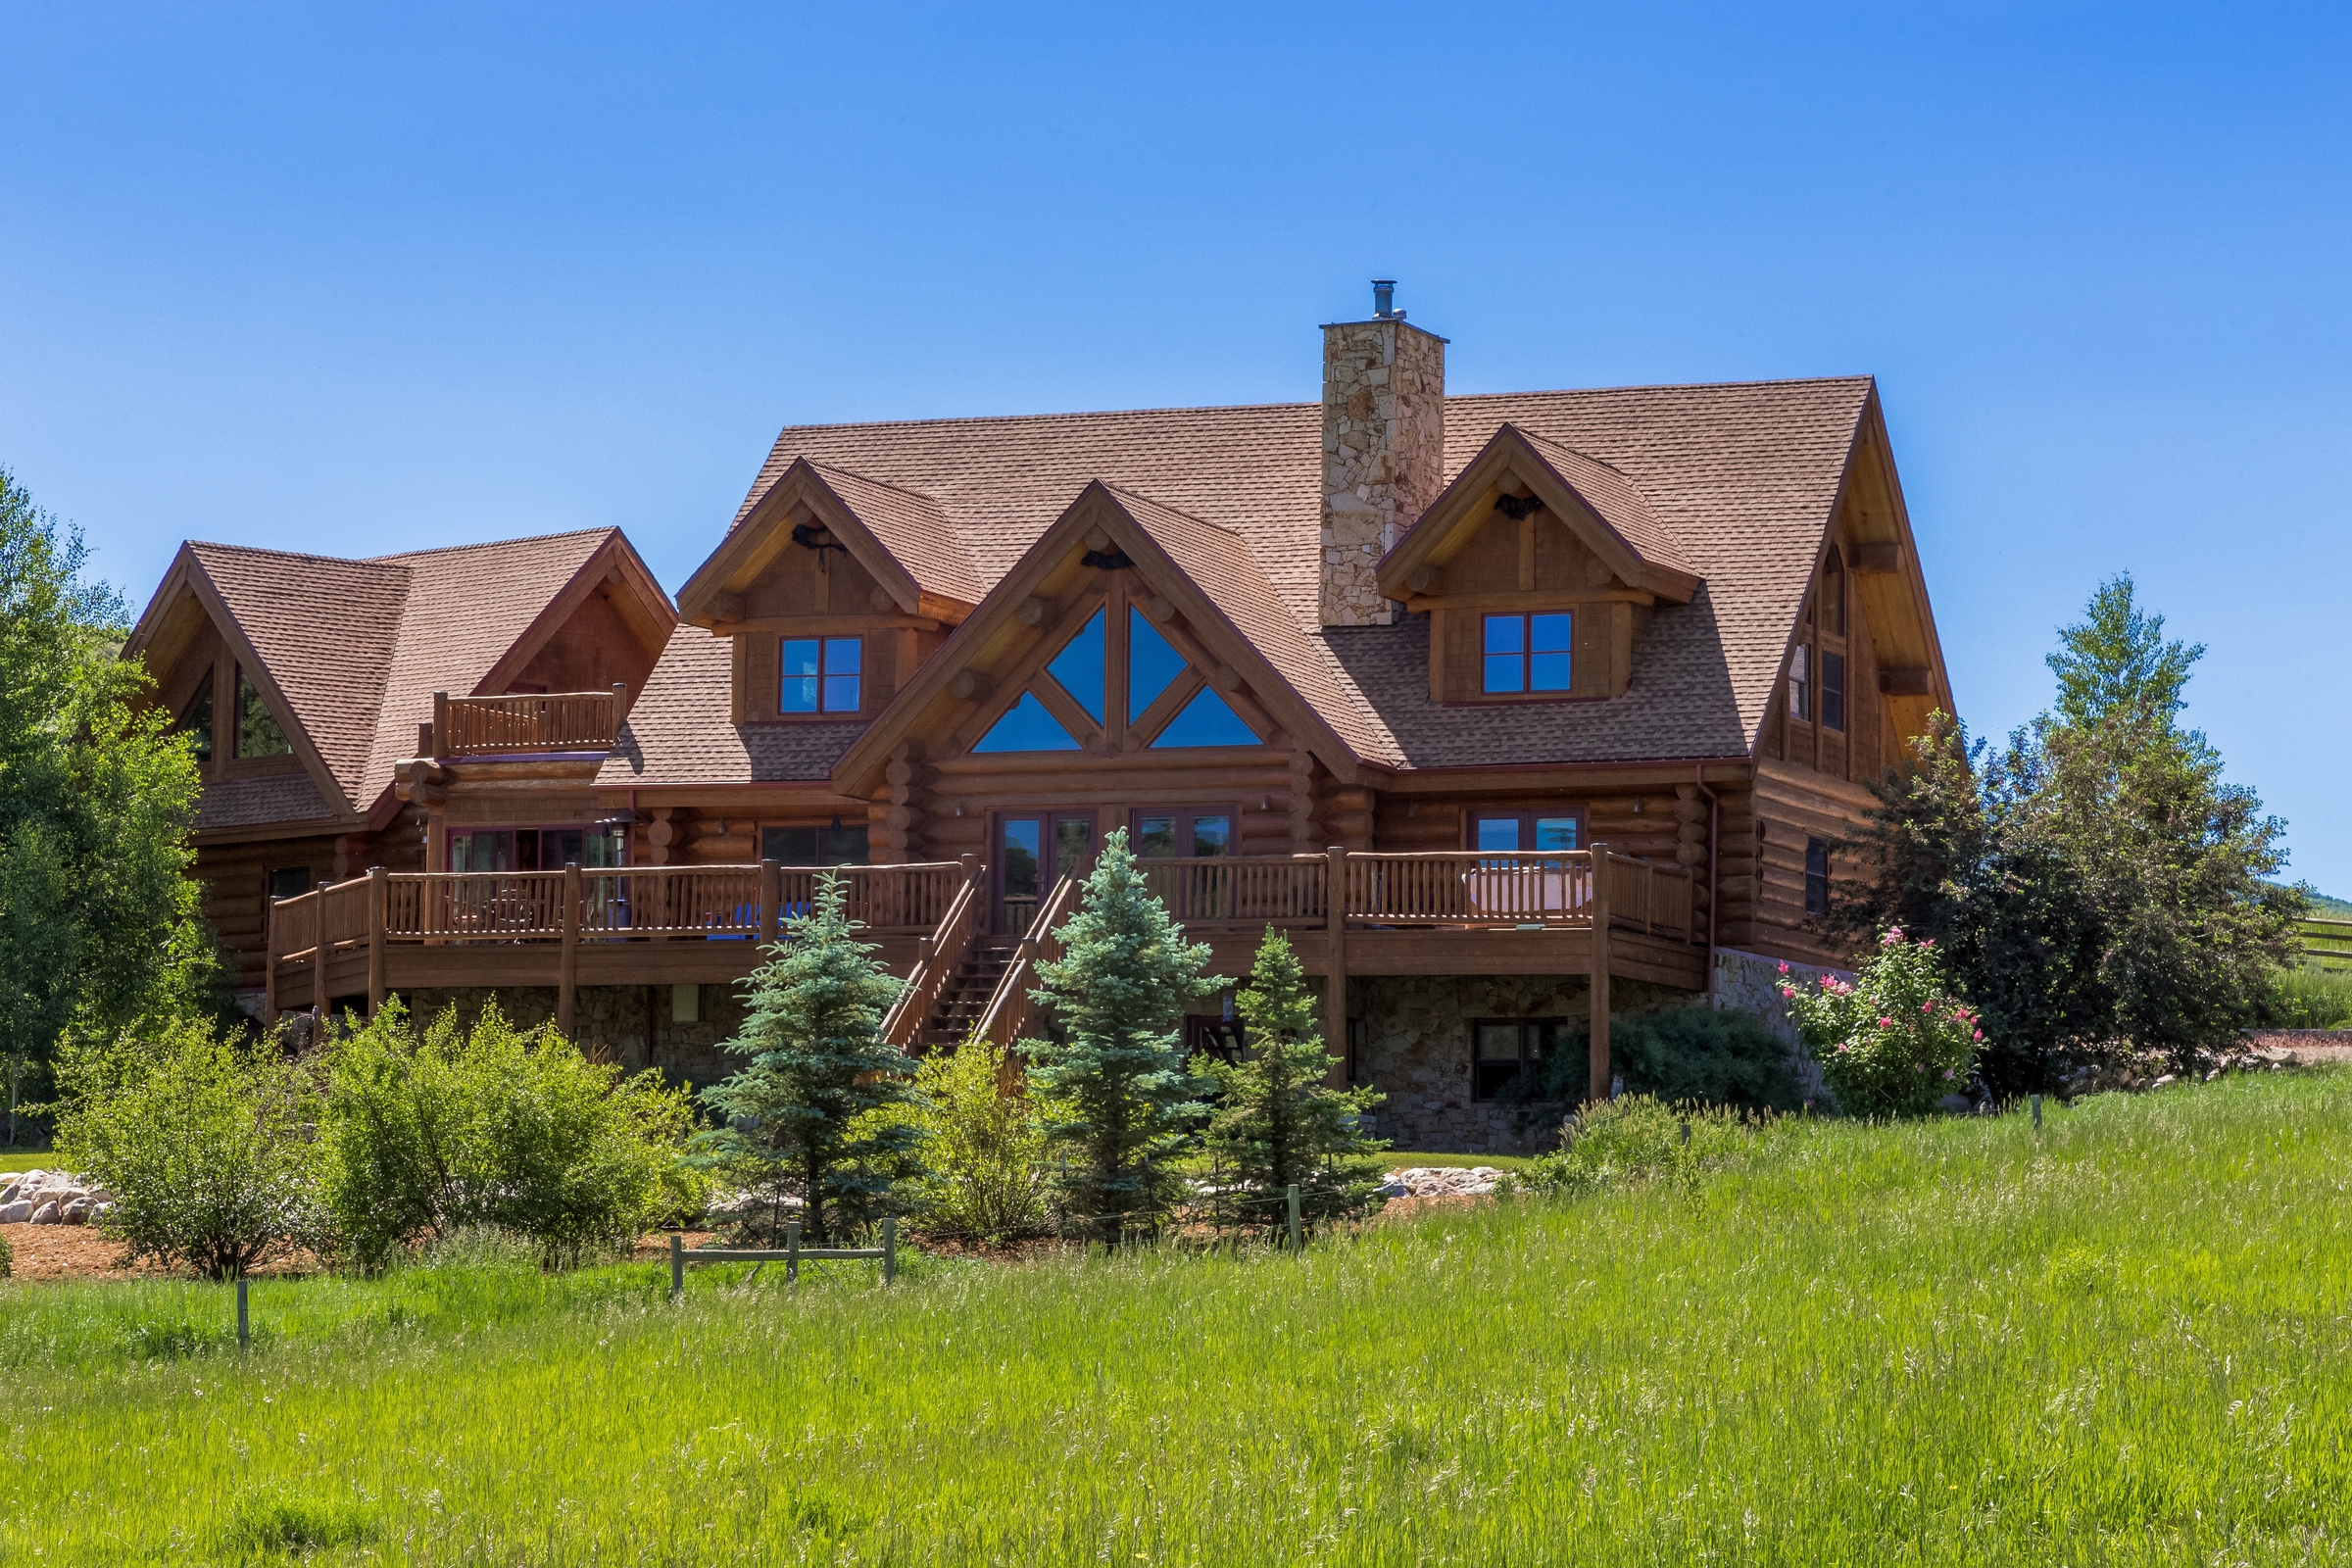 Single Family Home for Sale at Luxury Log Home in Creek Ranch 32255 Mack Lane Steamboat Springs, Colorado, 80487 United States